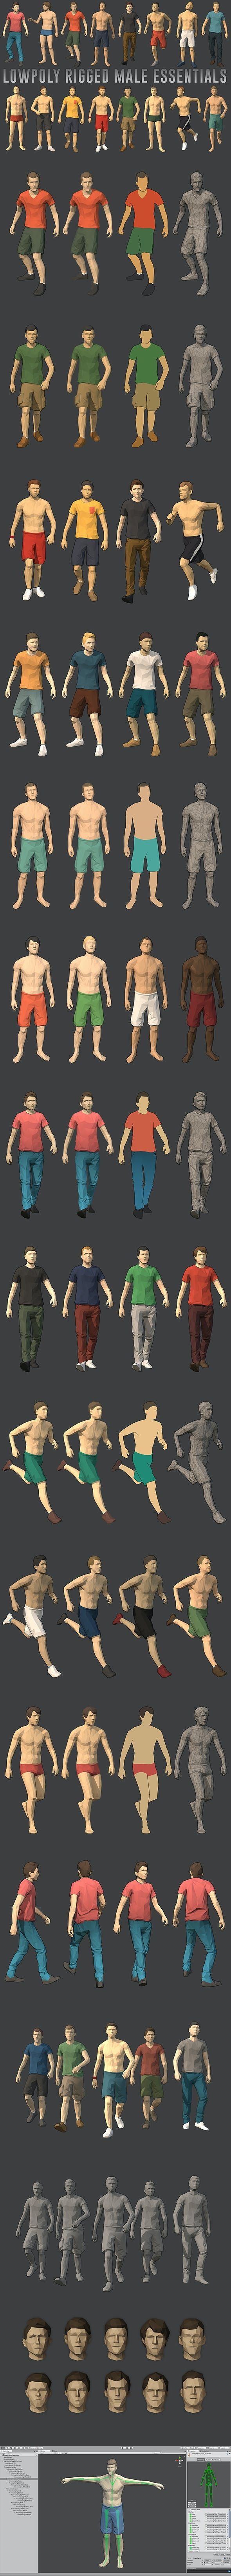 Lowpoly Rigged Male Essentials - 3DOcean Item for Sale